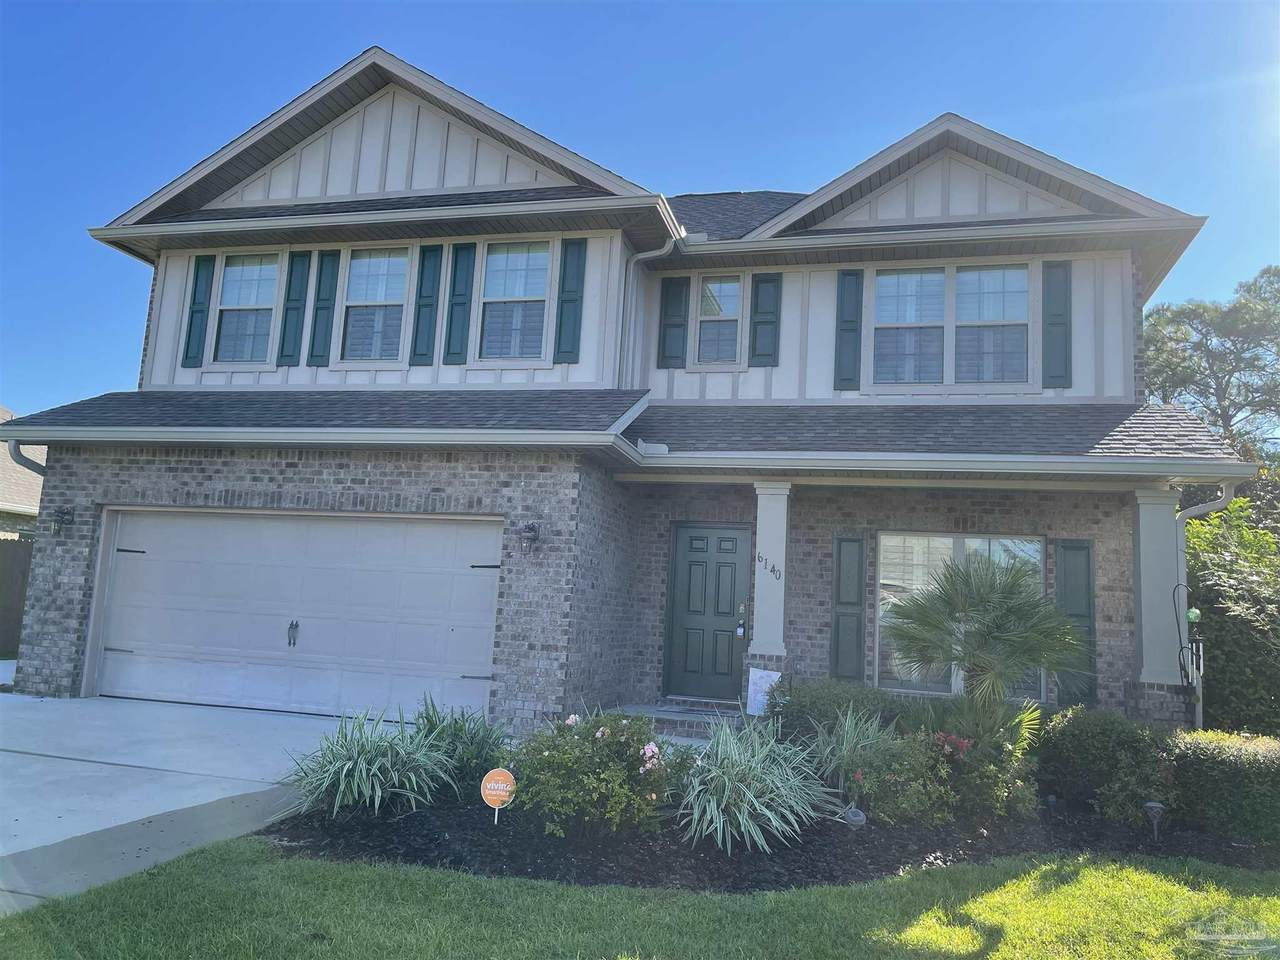 6140 Marie Dr - Photo 1